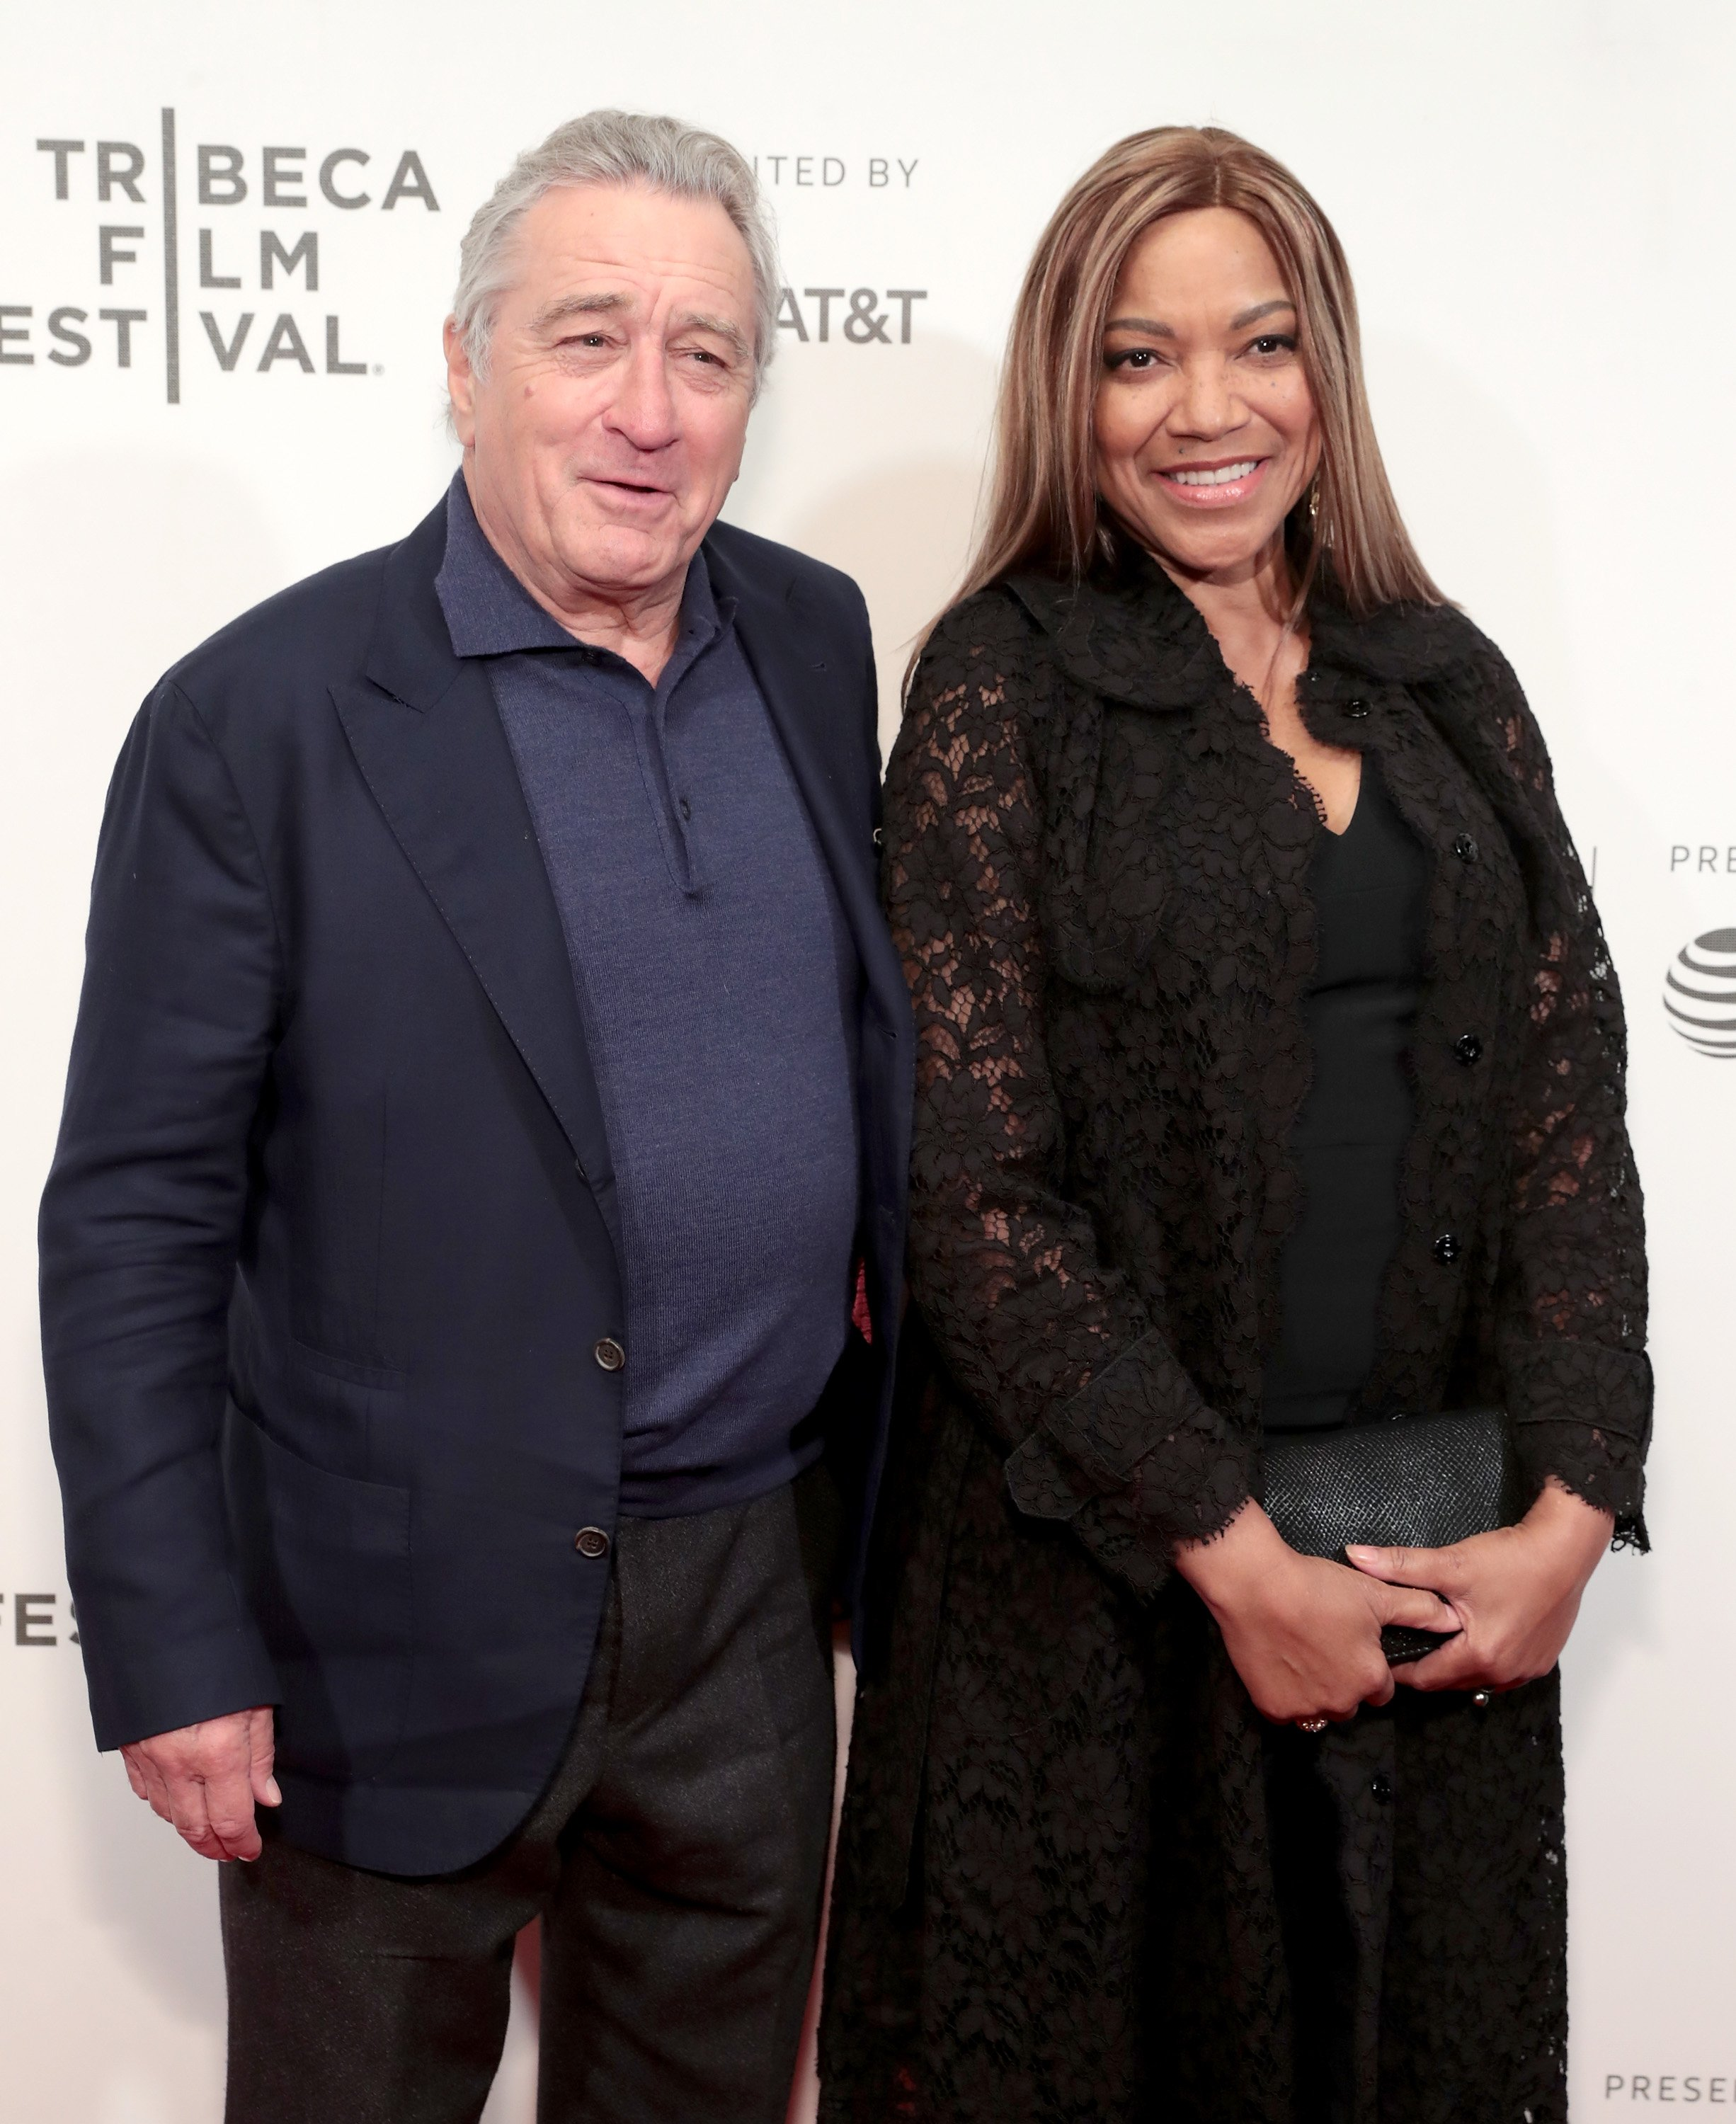 obert De Niro and Grace Hightower at the screening of 'The Fourth Estate' at the 2018 Tribeca Film Festival at BMCC Tribeca PAC on April 28, 2018 in New York City. | Photo: Getty